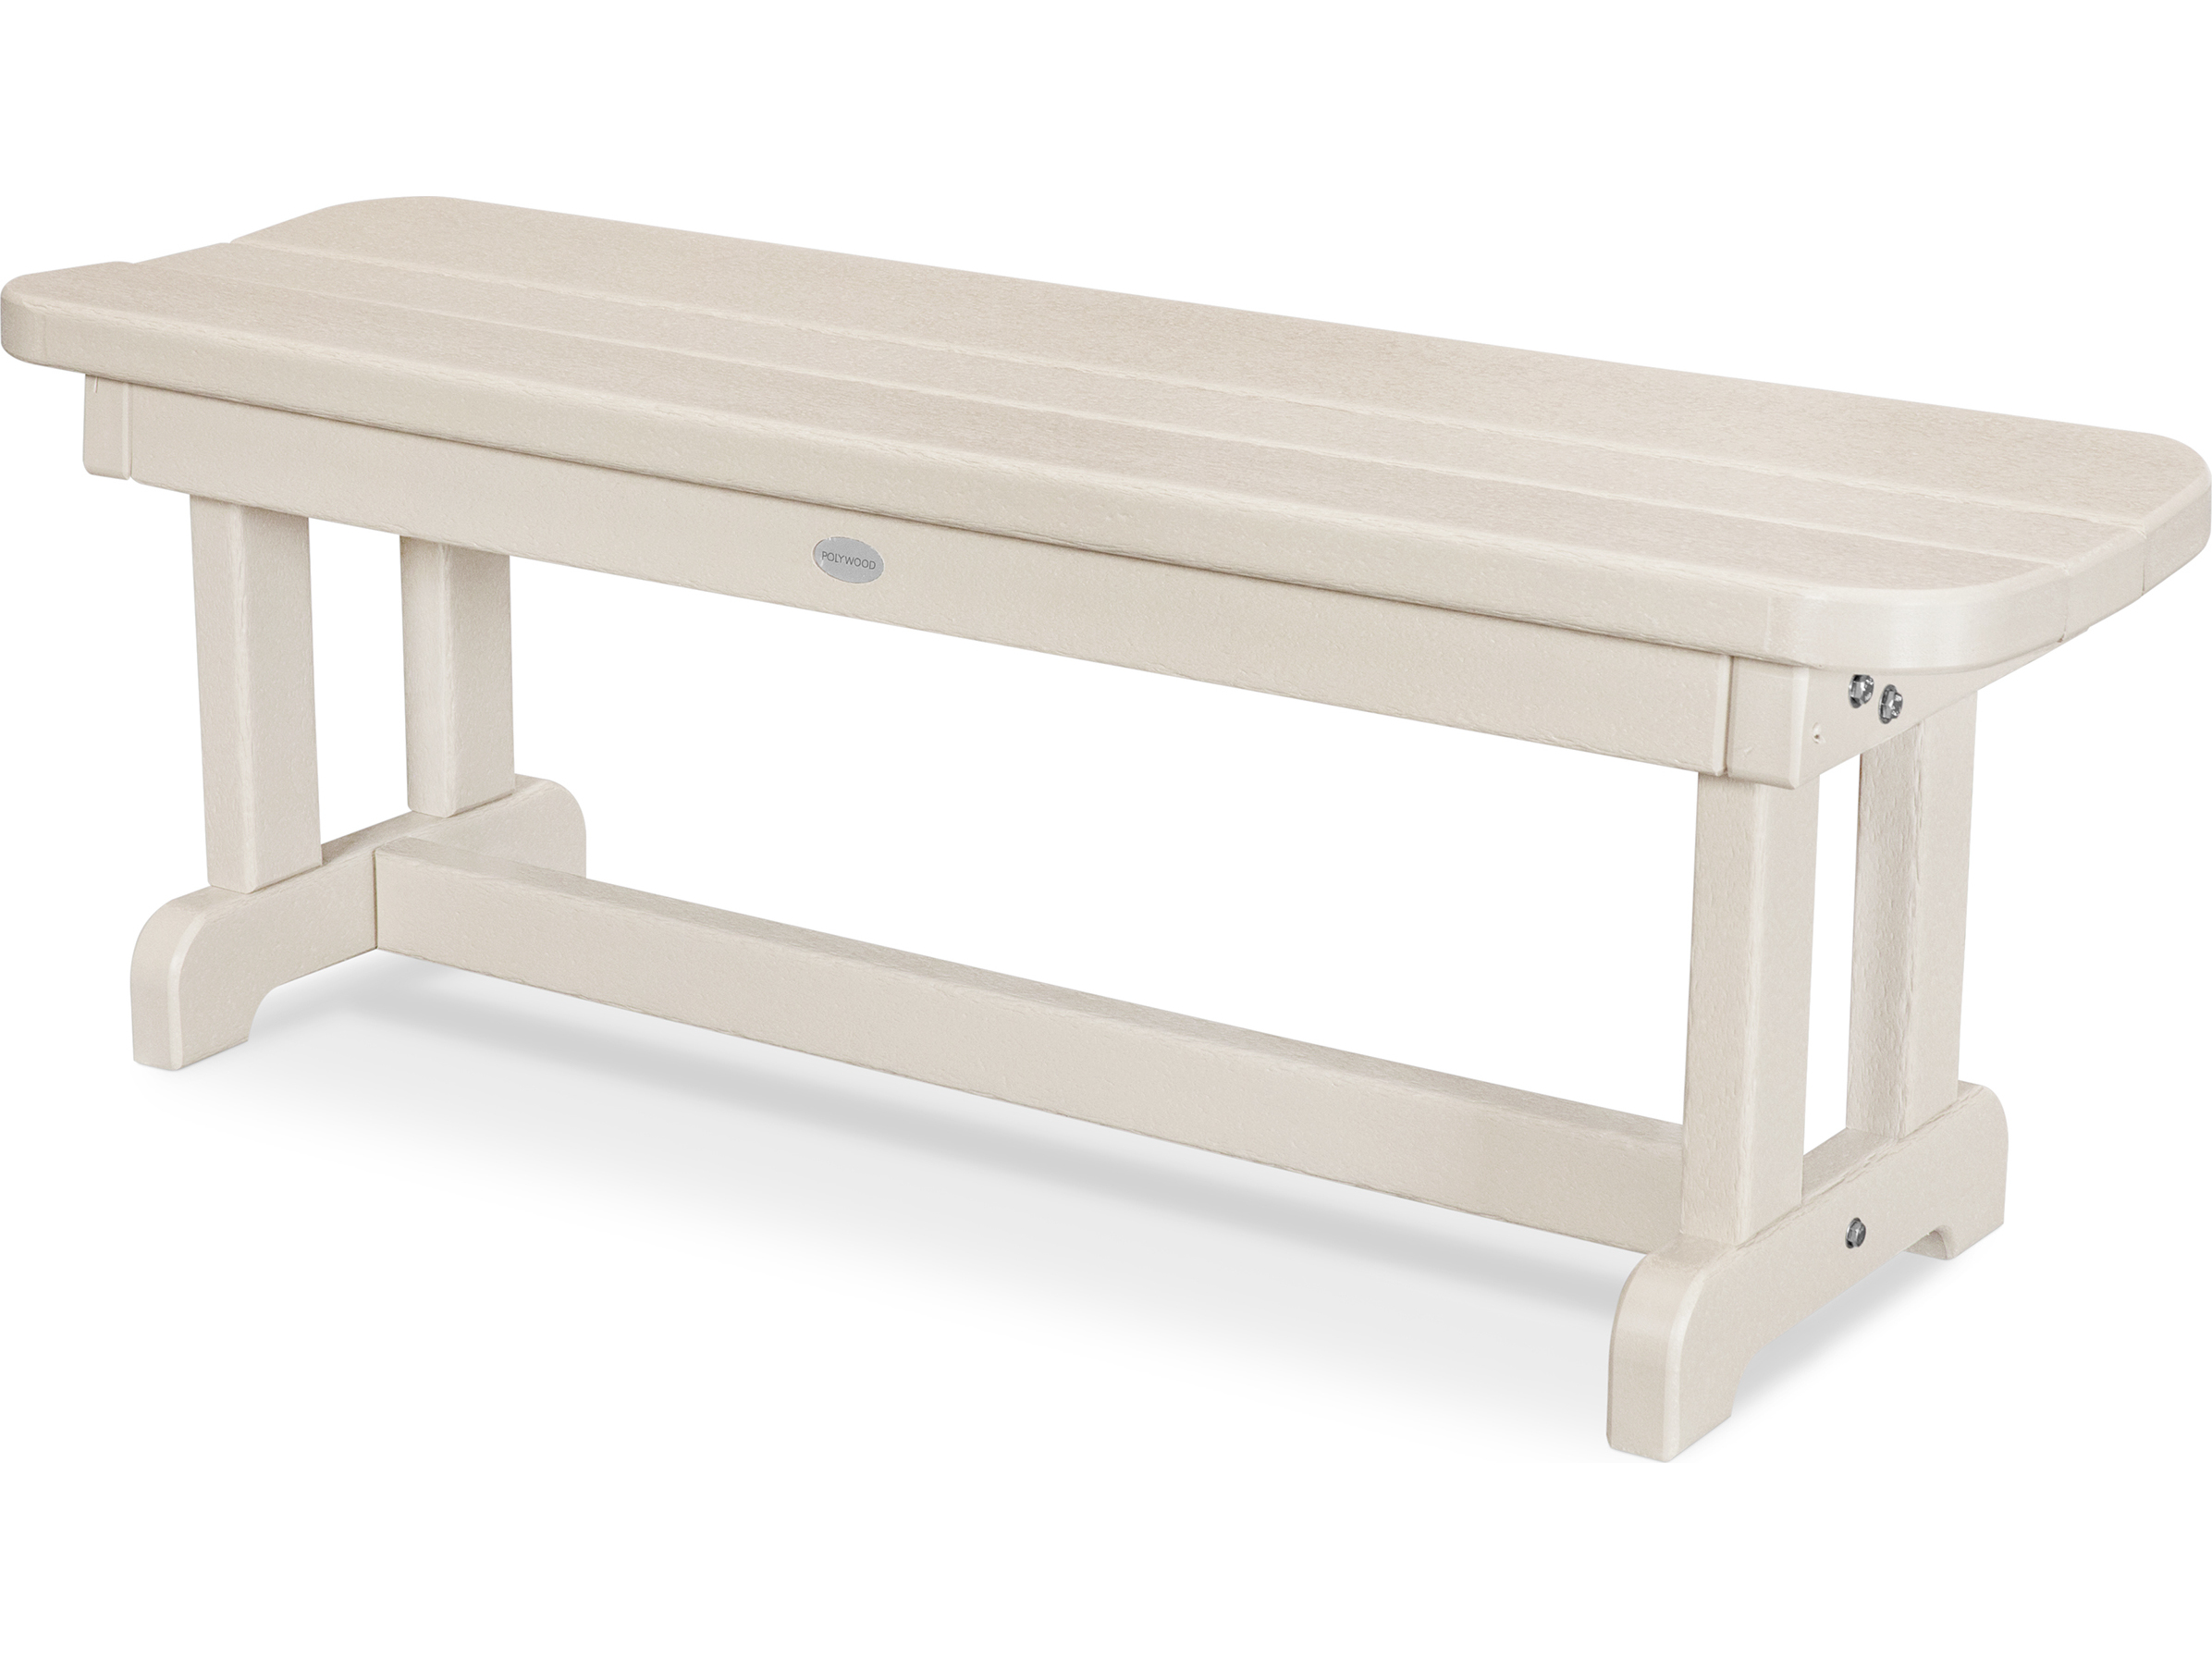 reviews bench garden pdp wayfair benches storage mcgee uk co lynton plastic recycled